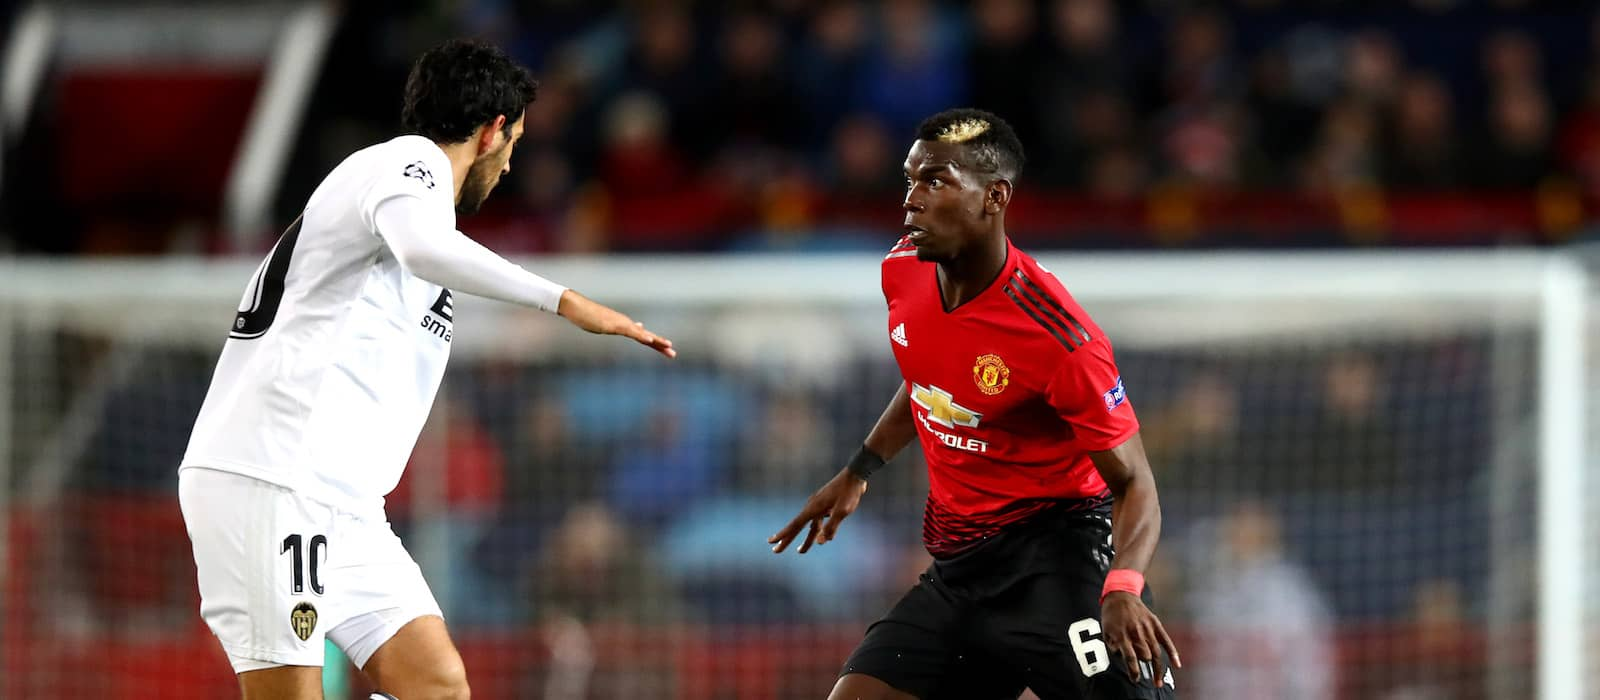 Paul Pogba must say nothing and just play football at Manchester United, claims Robert Pires